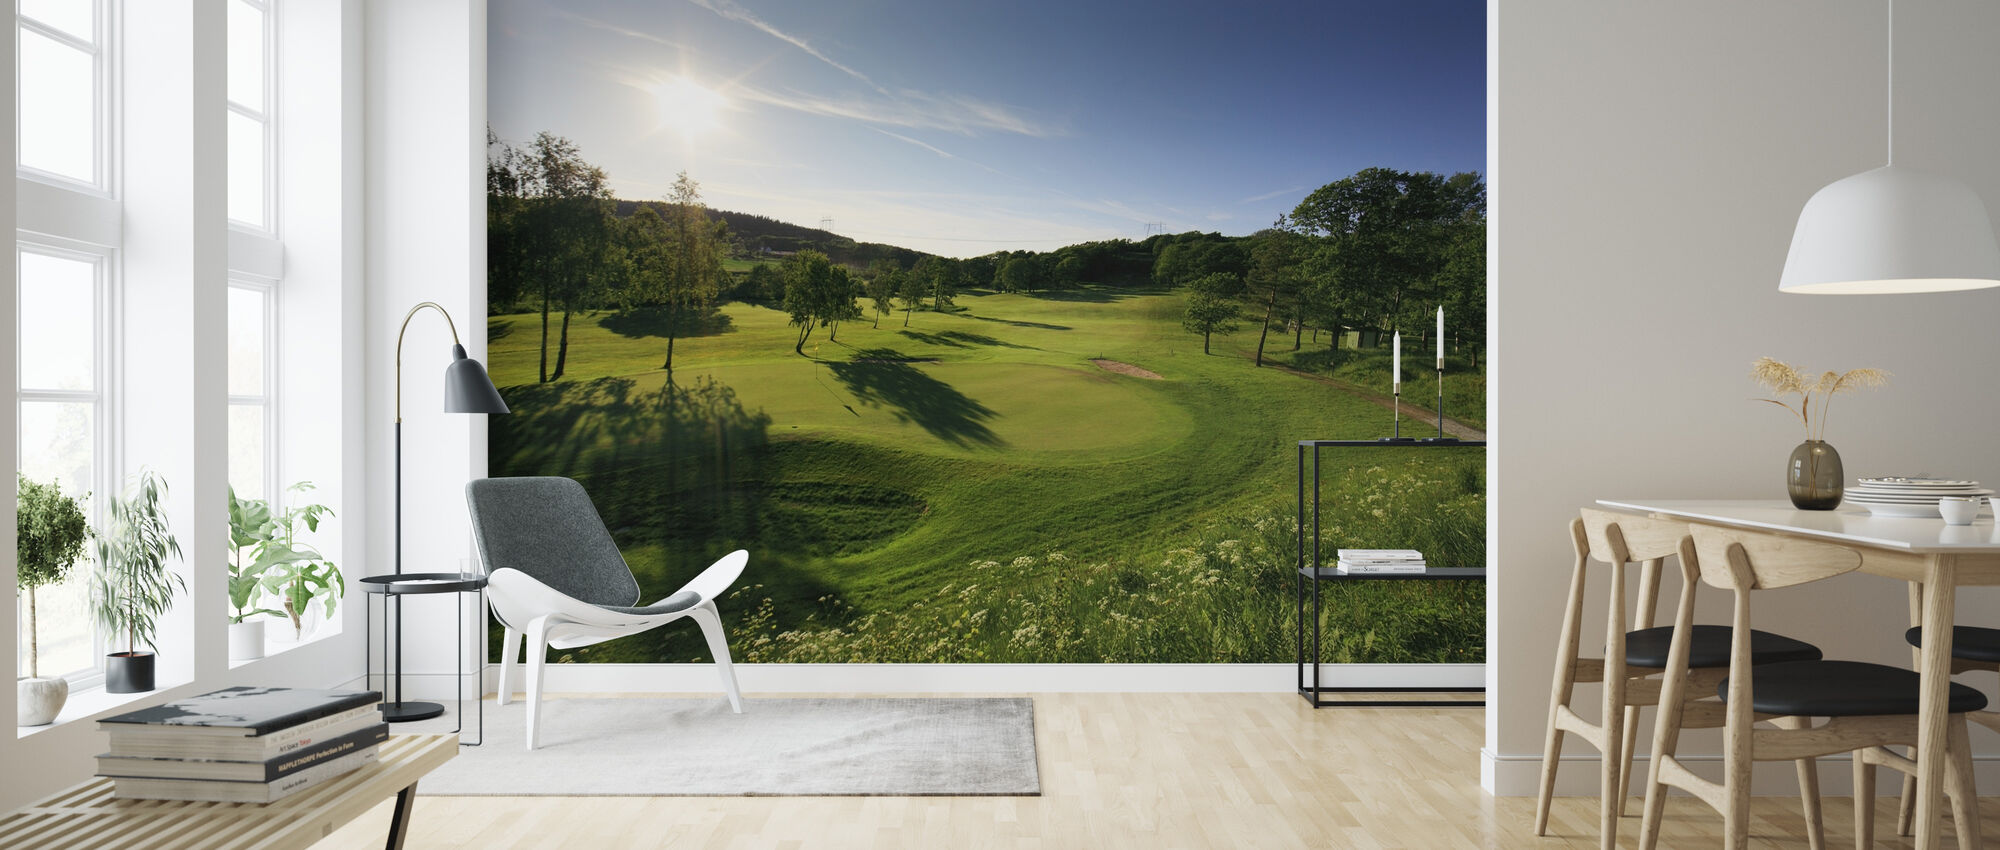 Golf Court in Gothenburg, Sweden - Wallpaper - Living Room